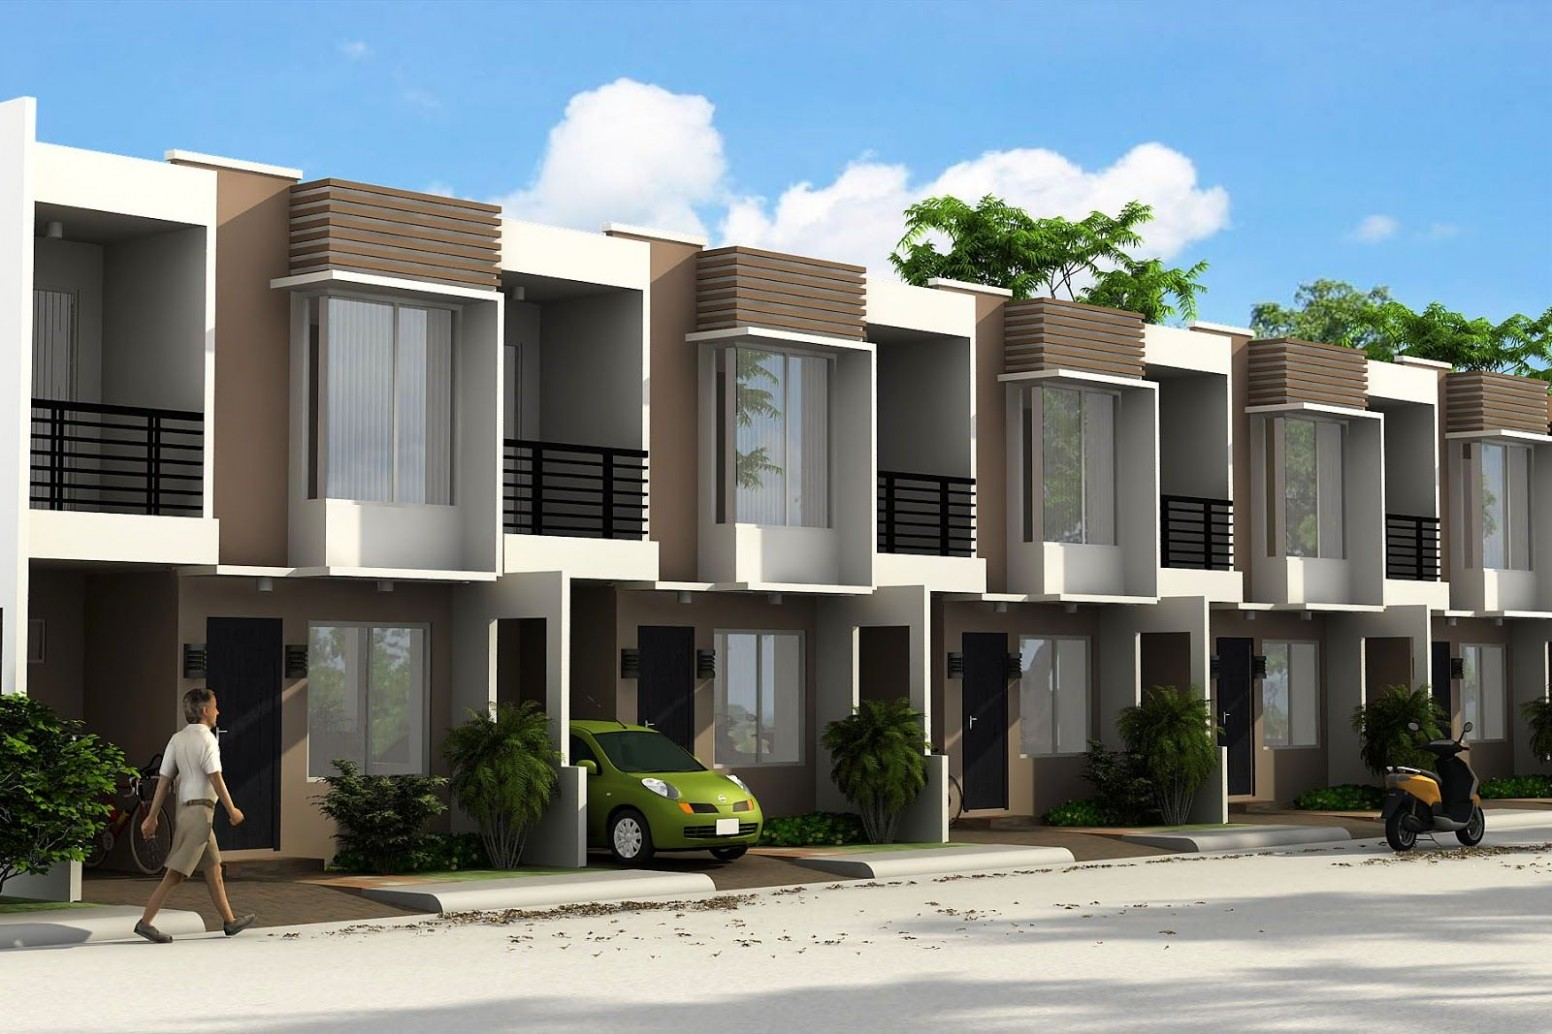 philippines townhouse design - Google Search  Townhouse exterior  - Apartment House Design Philippines